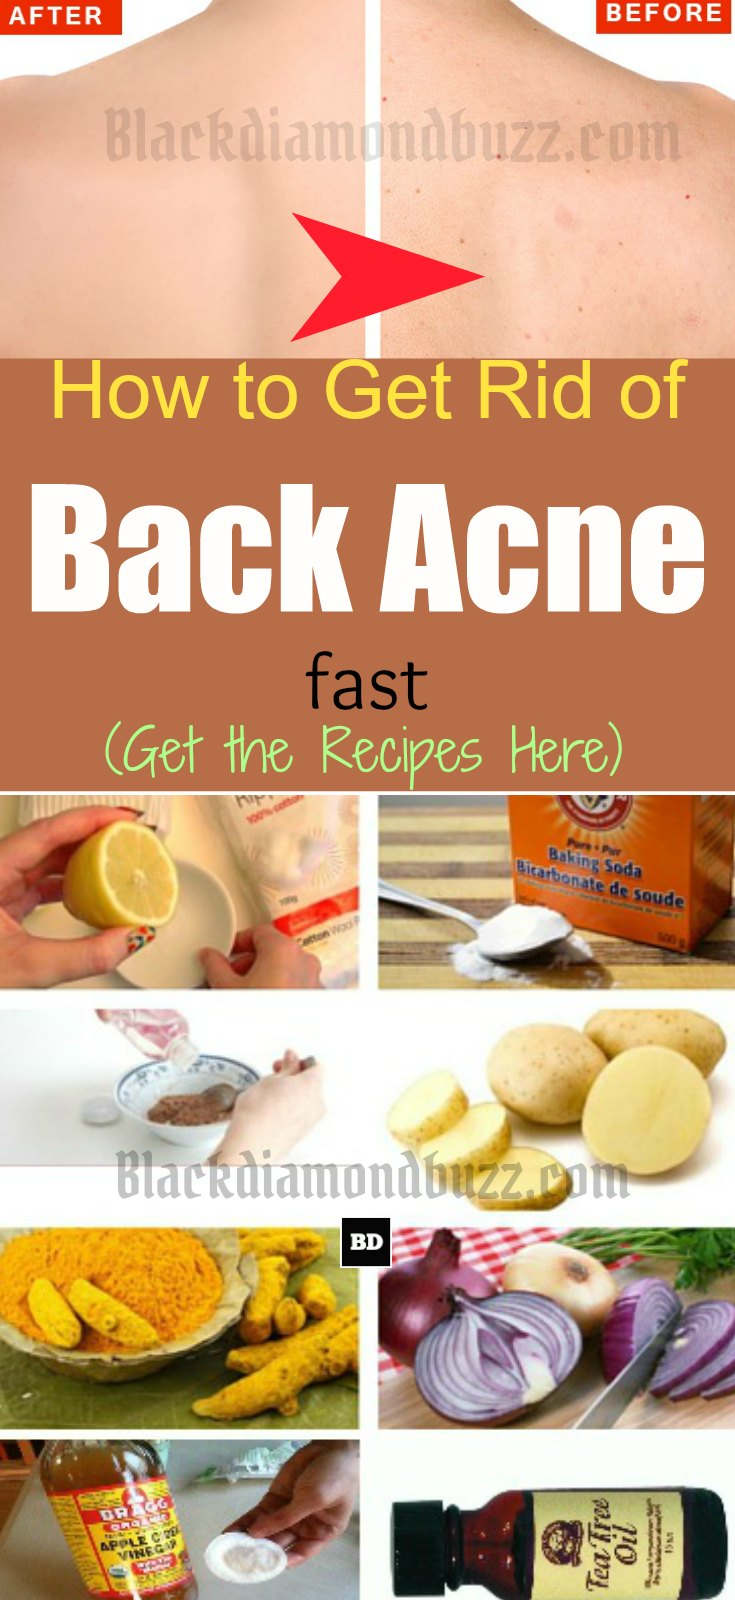 How To Get Rid Of Back Acne Fast 7 Best Home Remedies For Backne Blackdiamondbuzz